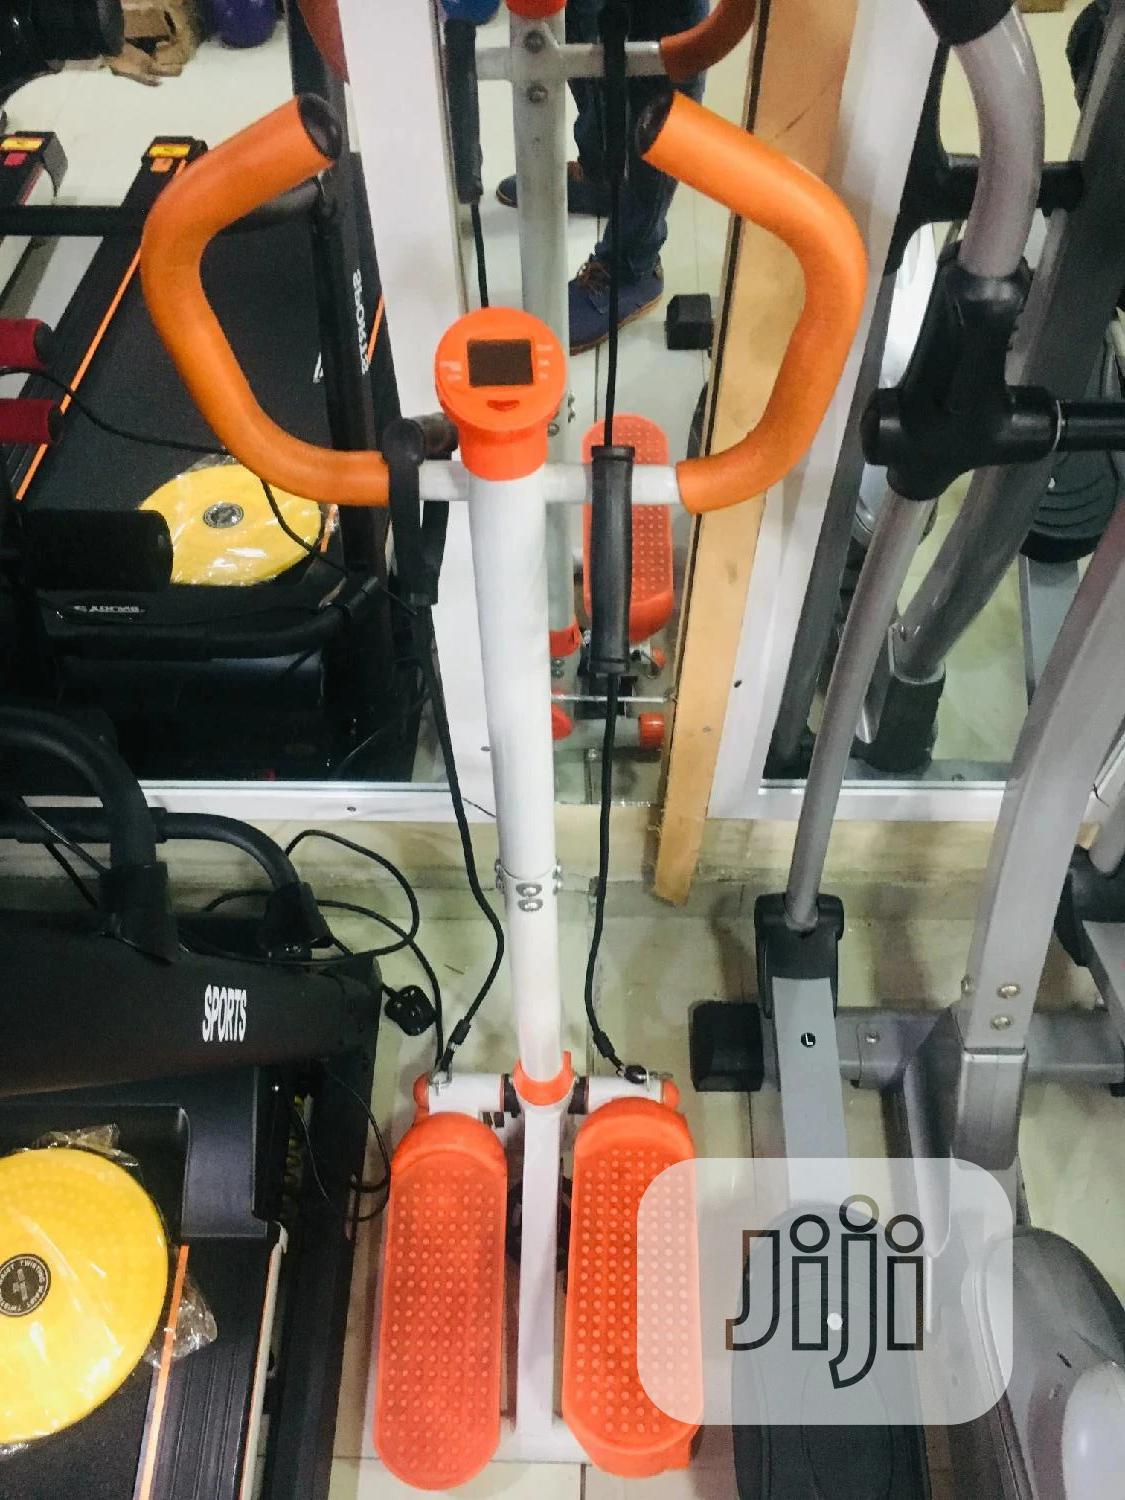 Multifunction Stepper With Handle